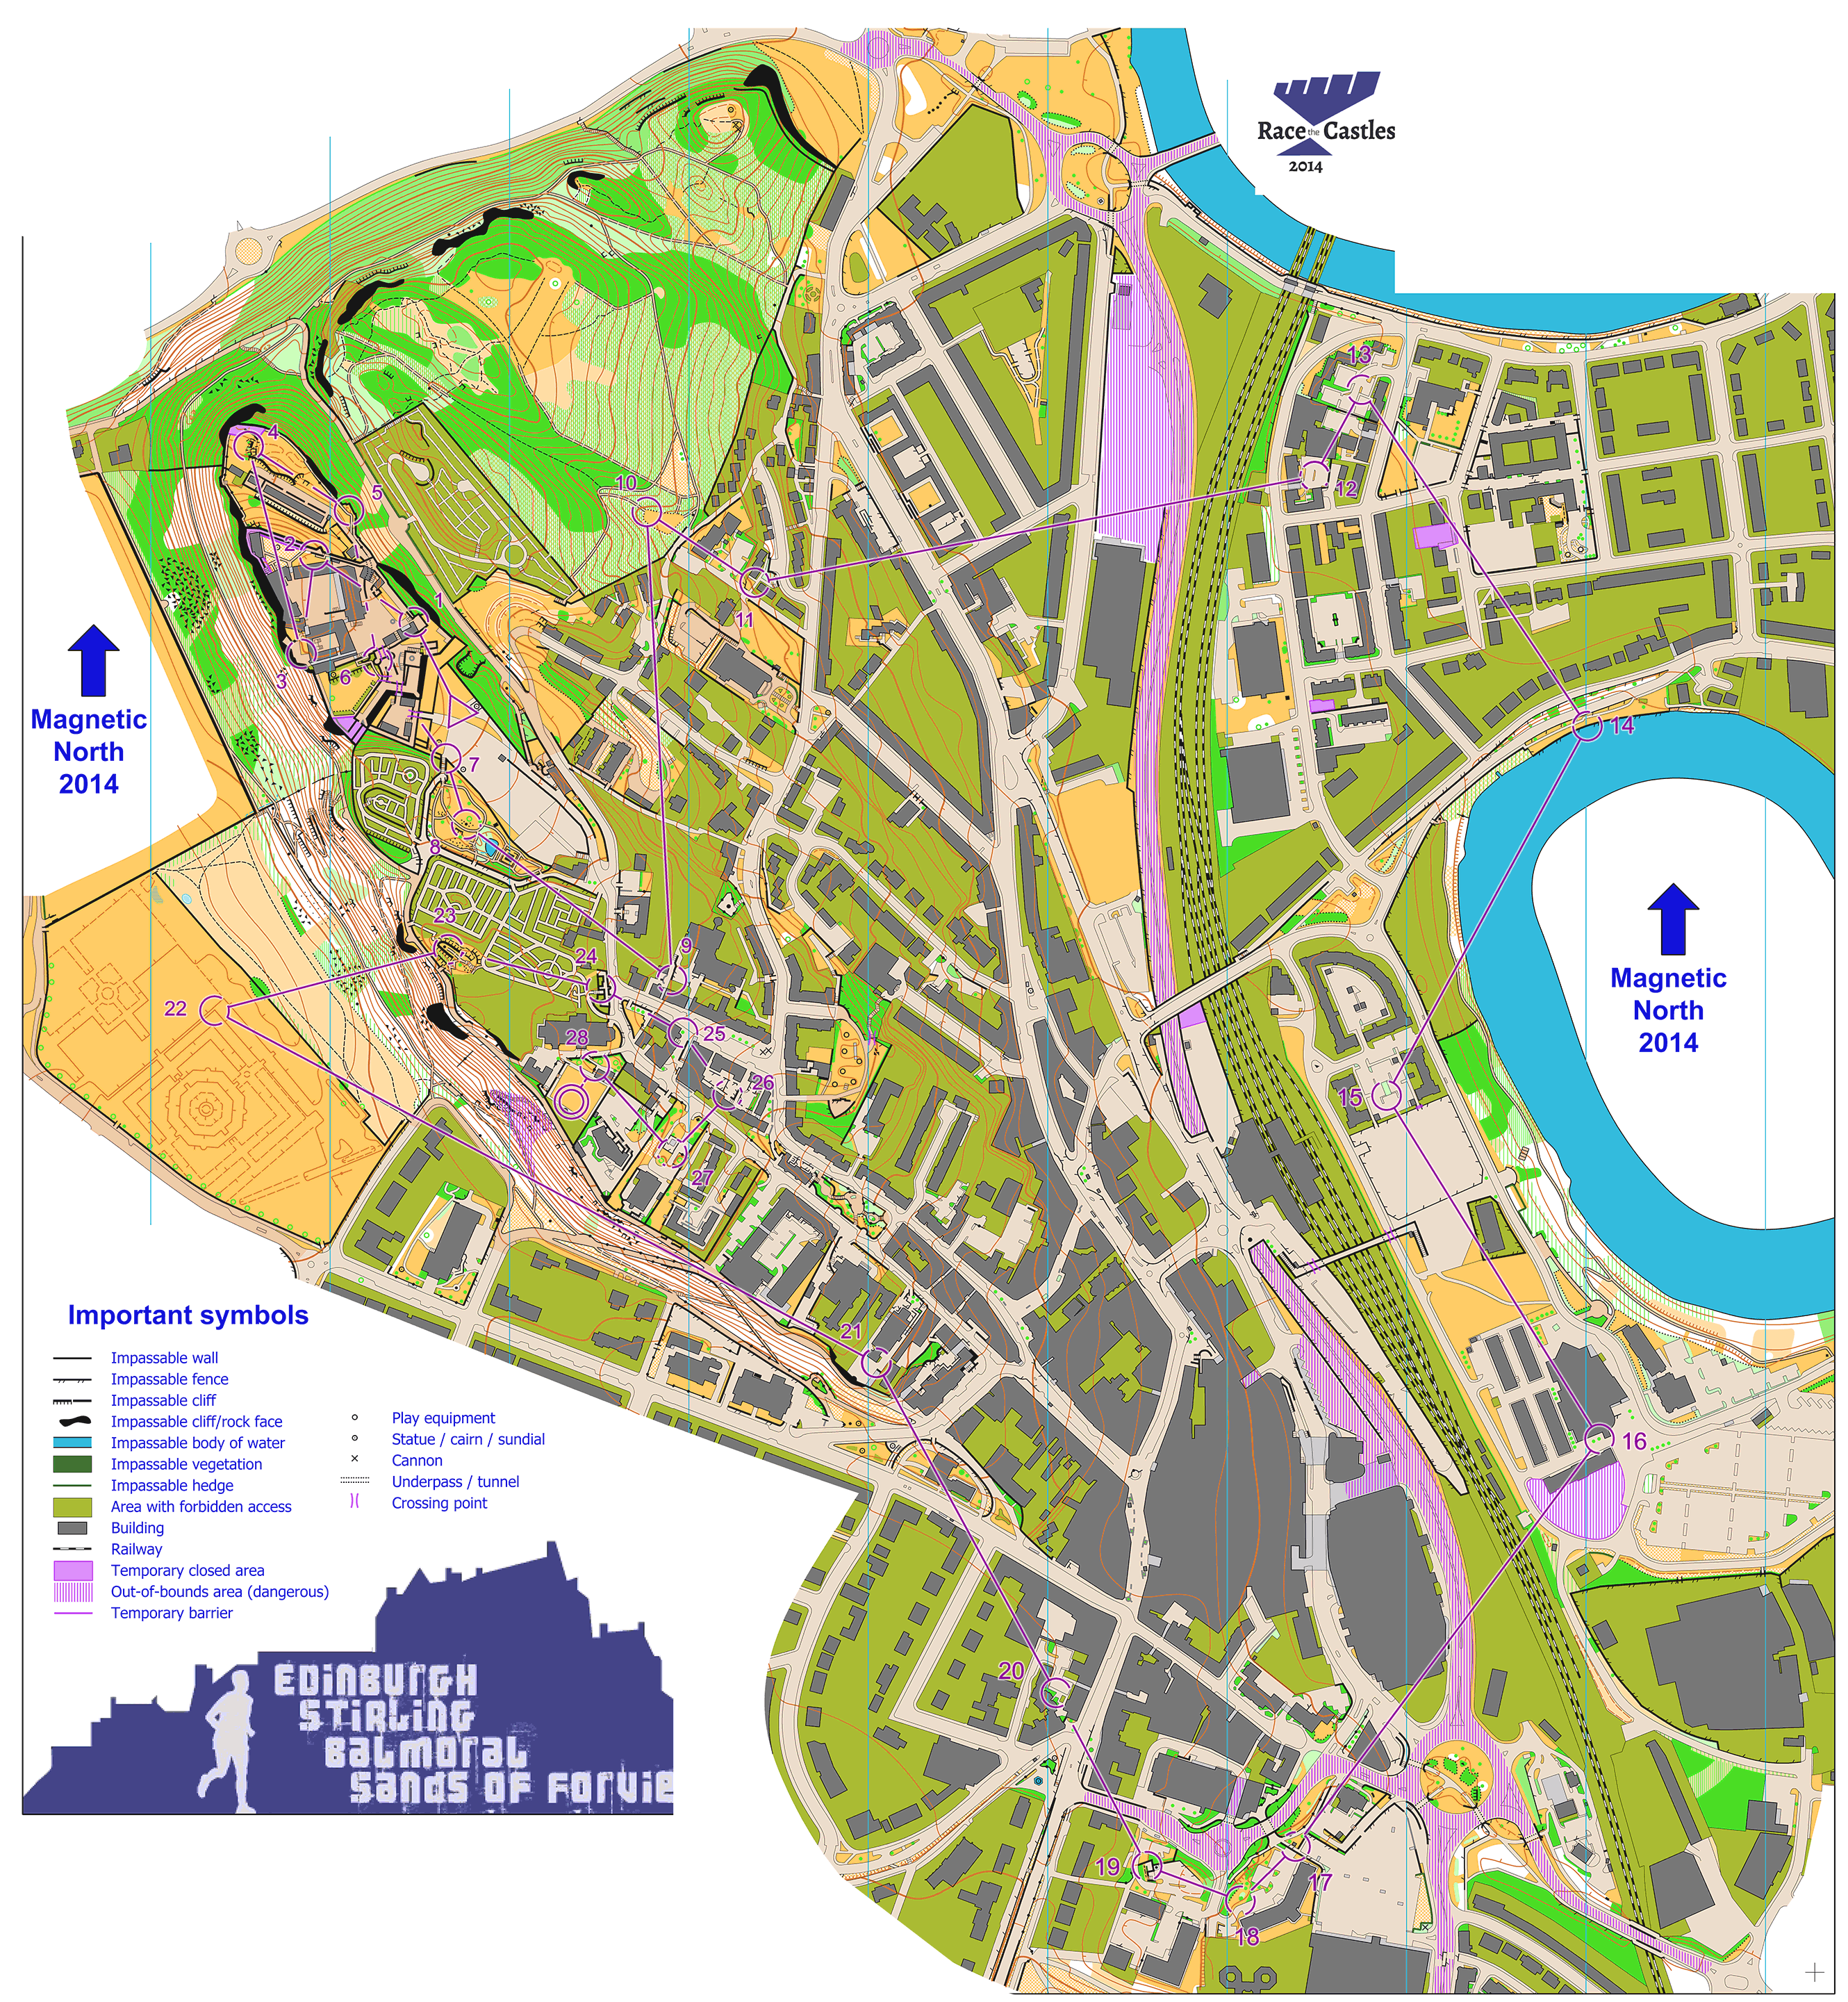 Race the castles stirling blue course october 12th 2014 request map deleted gumiabroncs Image collections